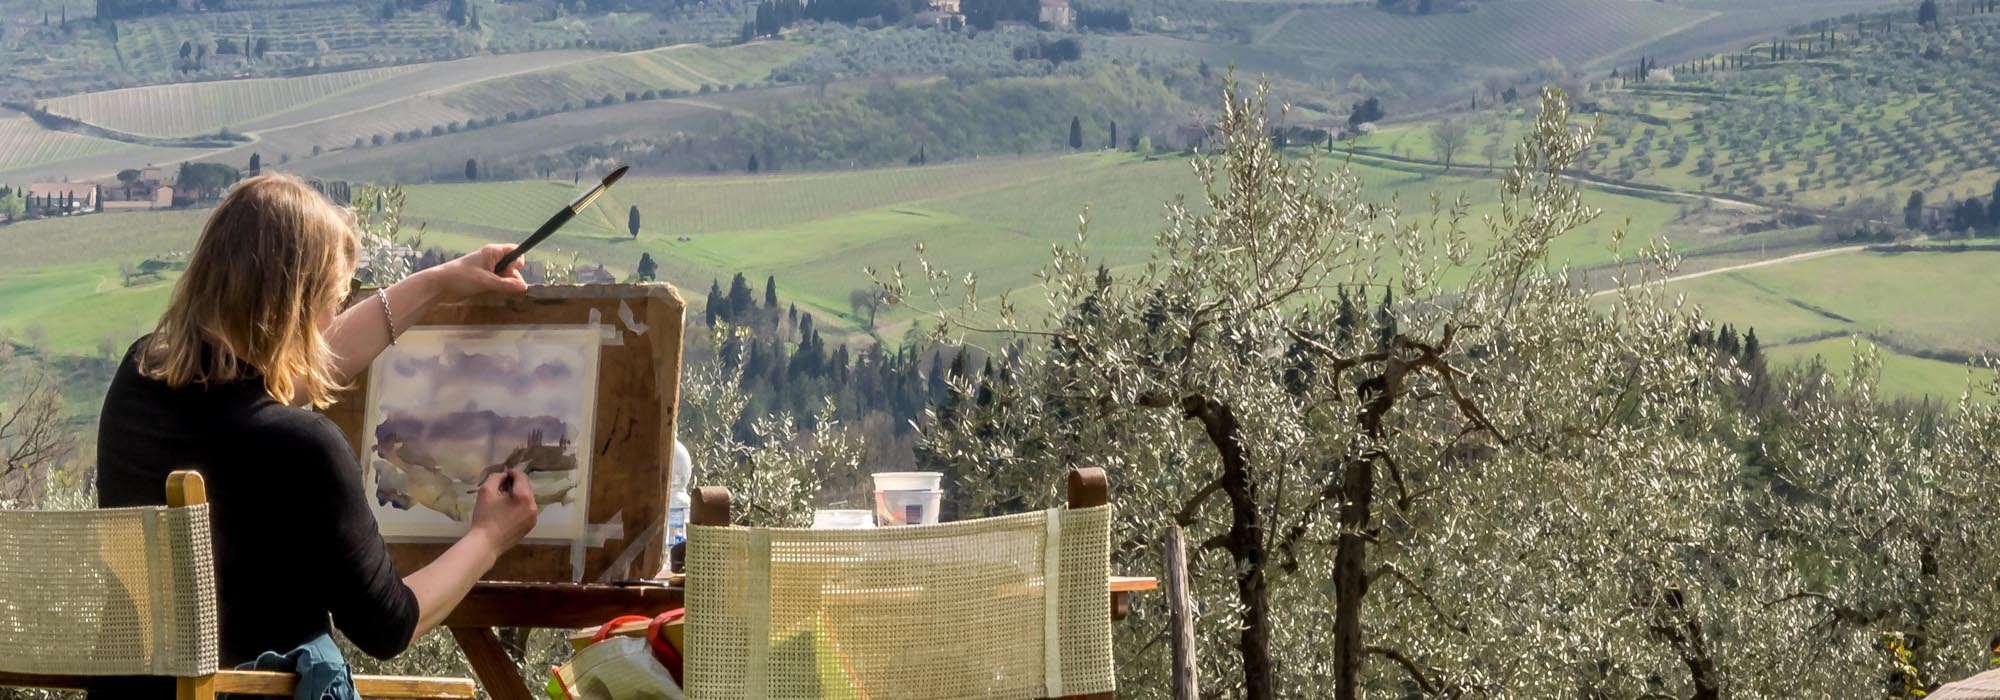 Bed and Breakfast Greve in Chianti, Firenze | B&B Ancora del Chianti